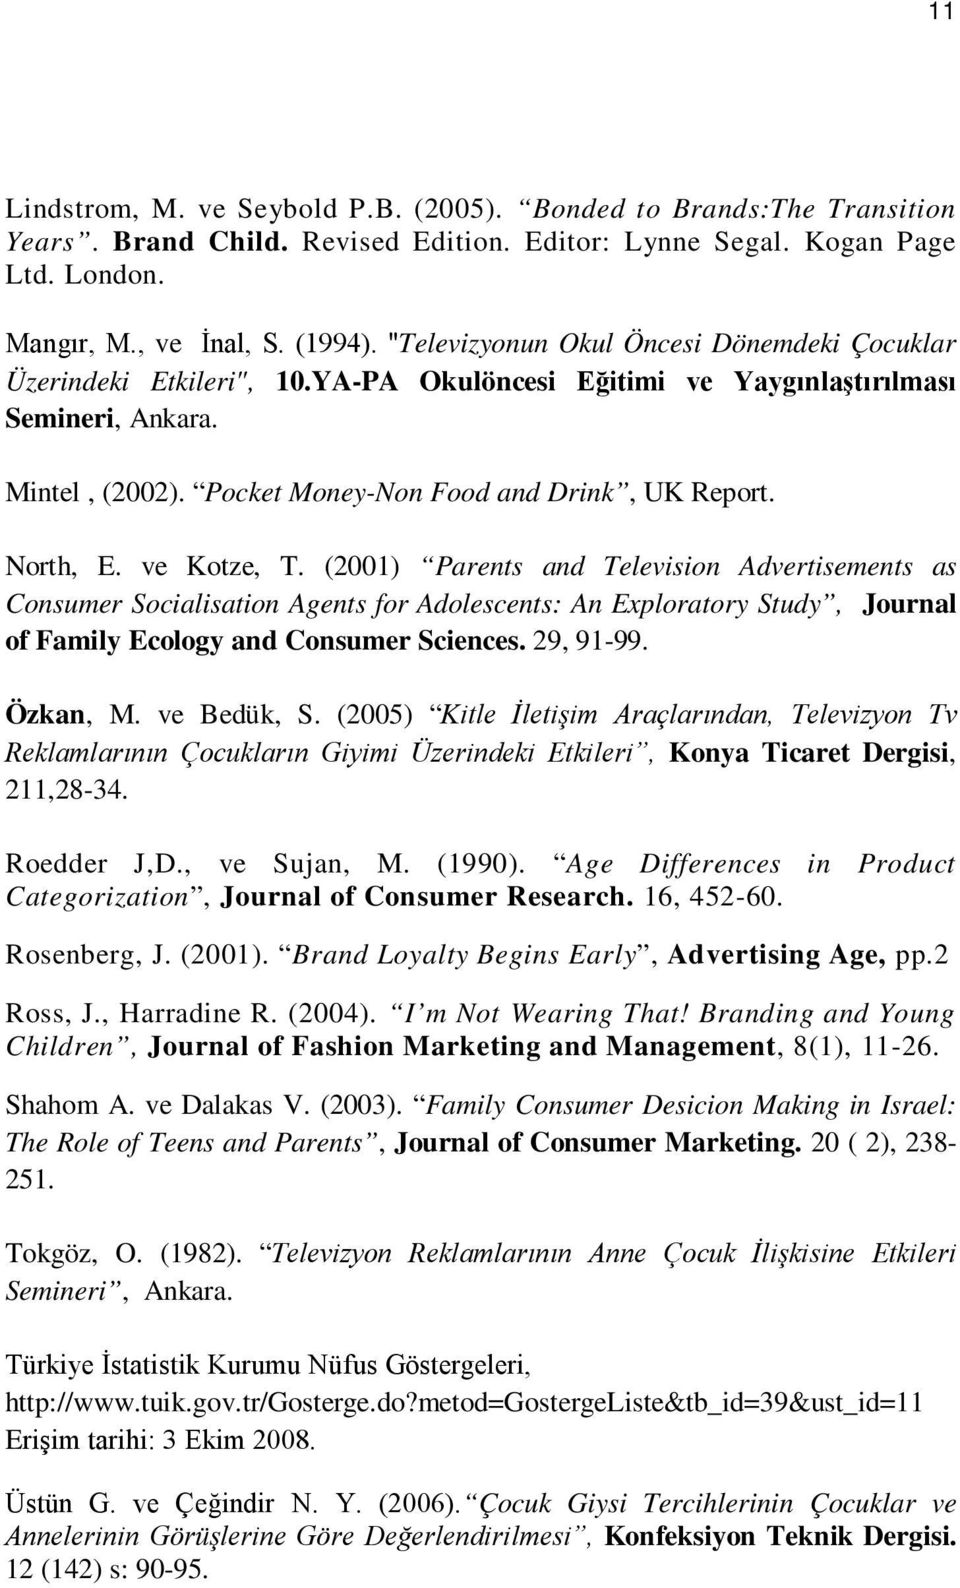 North, E. ve Kotze, T. (2001) Parents and Television Advertisements as Consumer Socialisation Agents for Adolescents: An Exploratory Study, Journal of Family Ecology and Consumer Sciences. 29, 91-99.